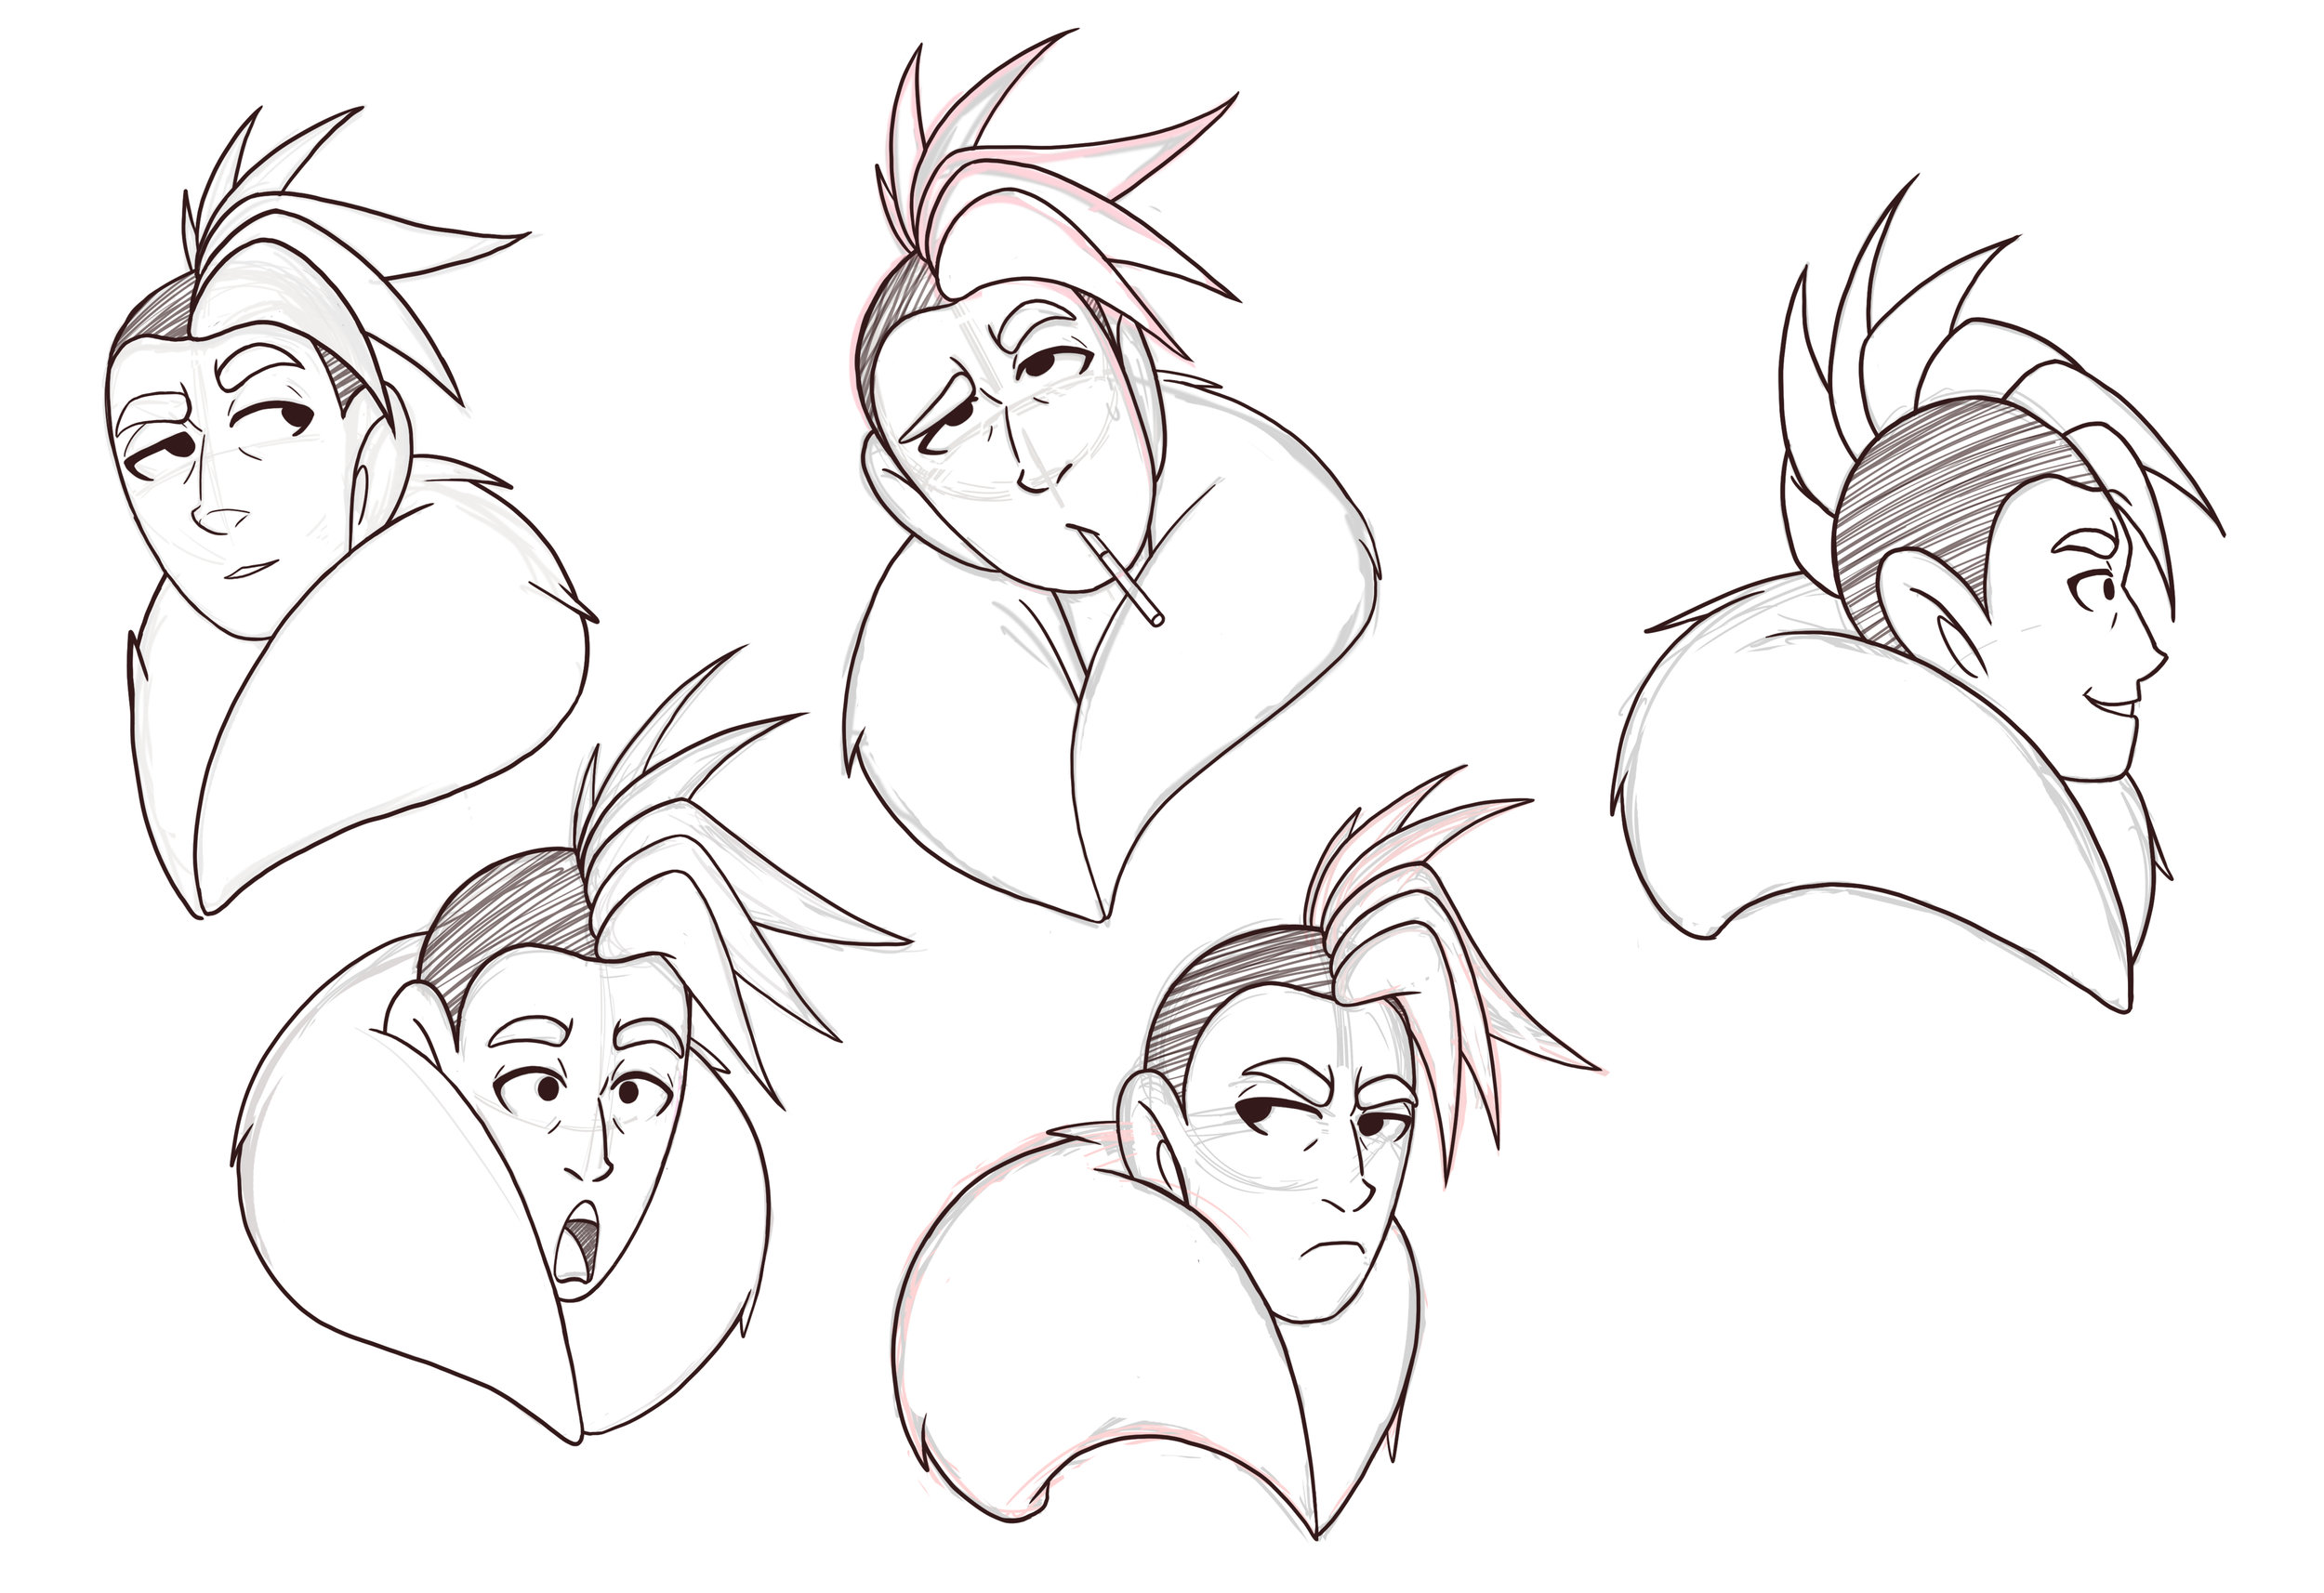 character_expression.jpg